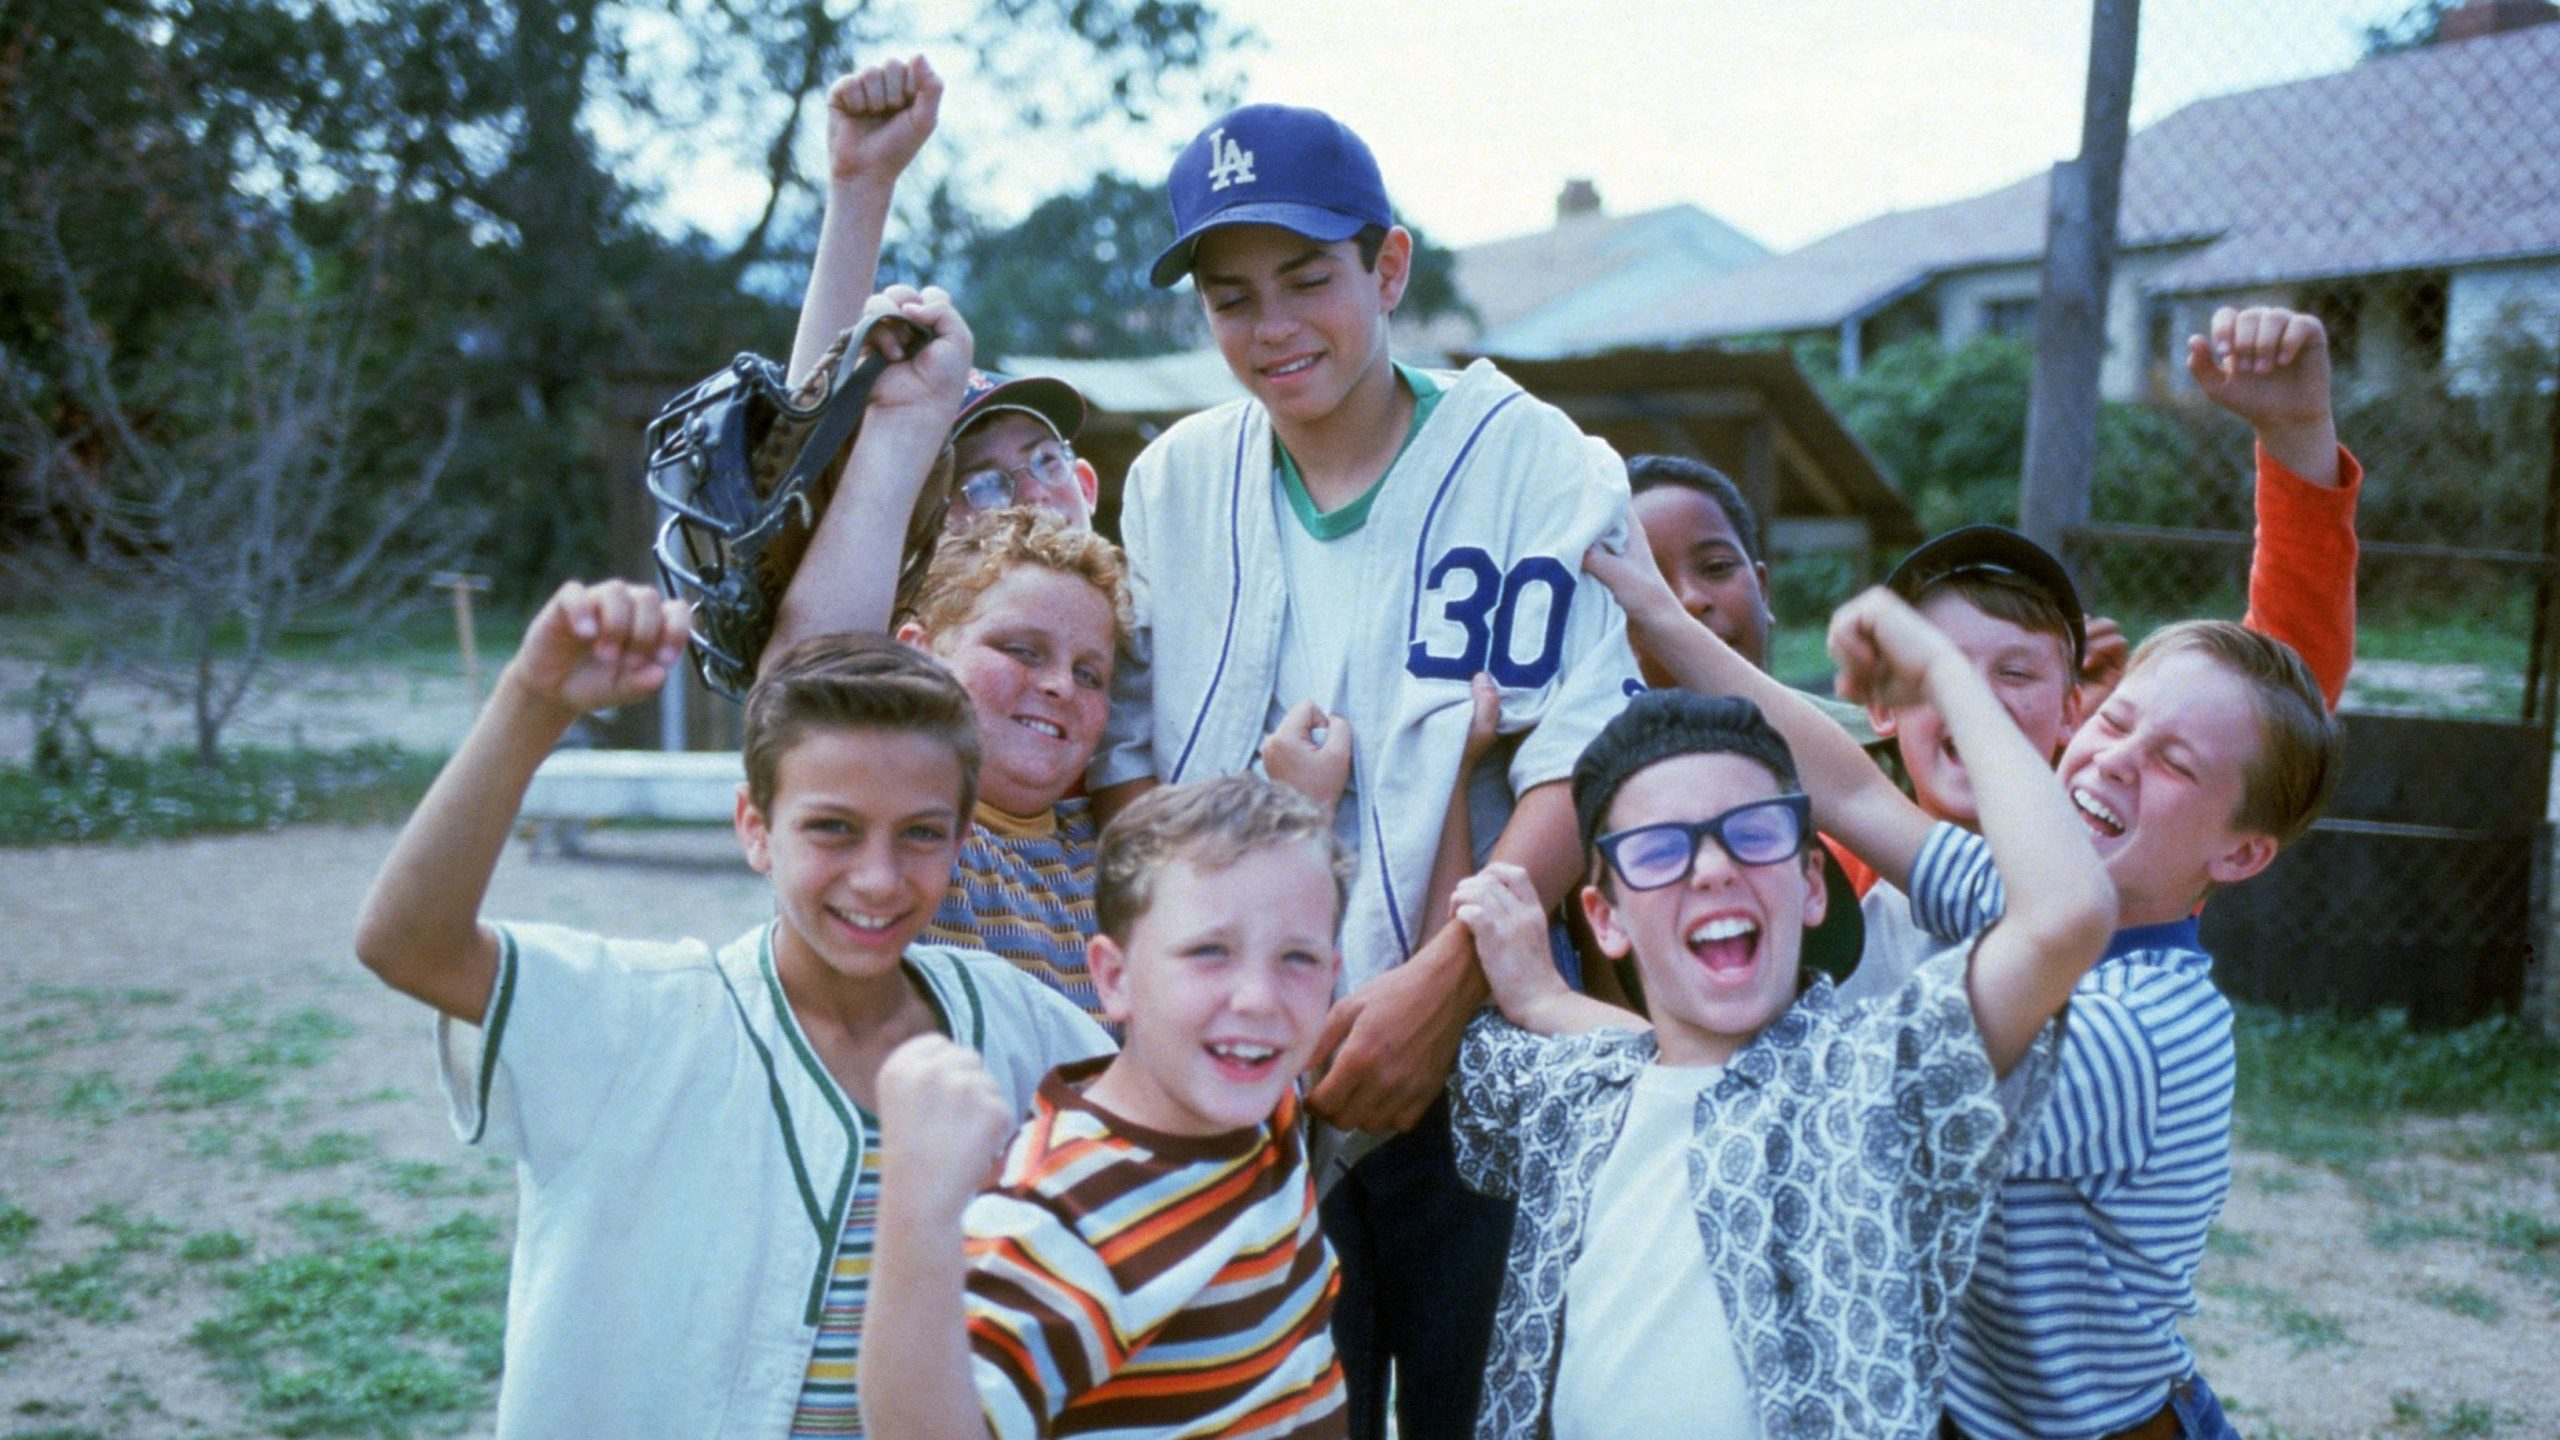 The cast of The Sandlot cheering with Ben Rodriguez on their shoulders.